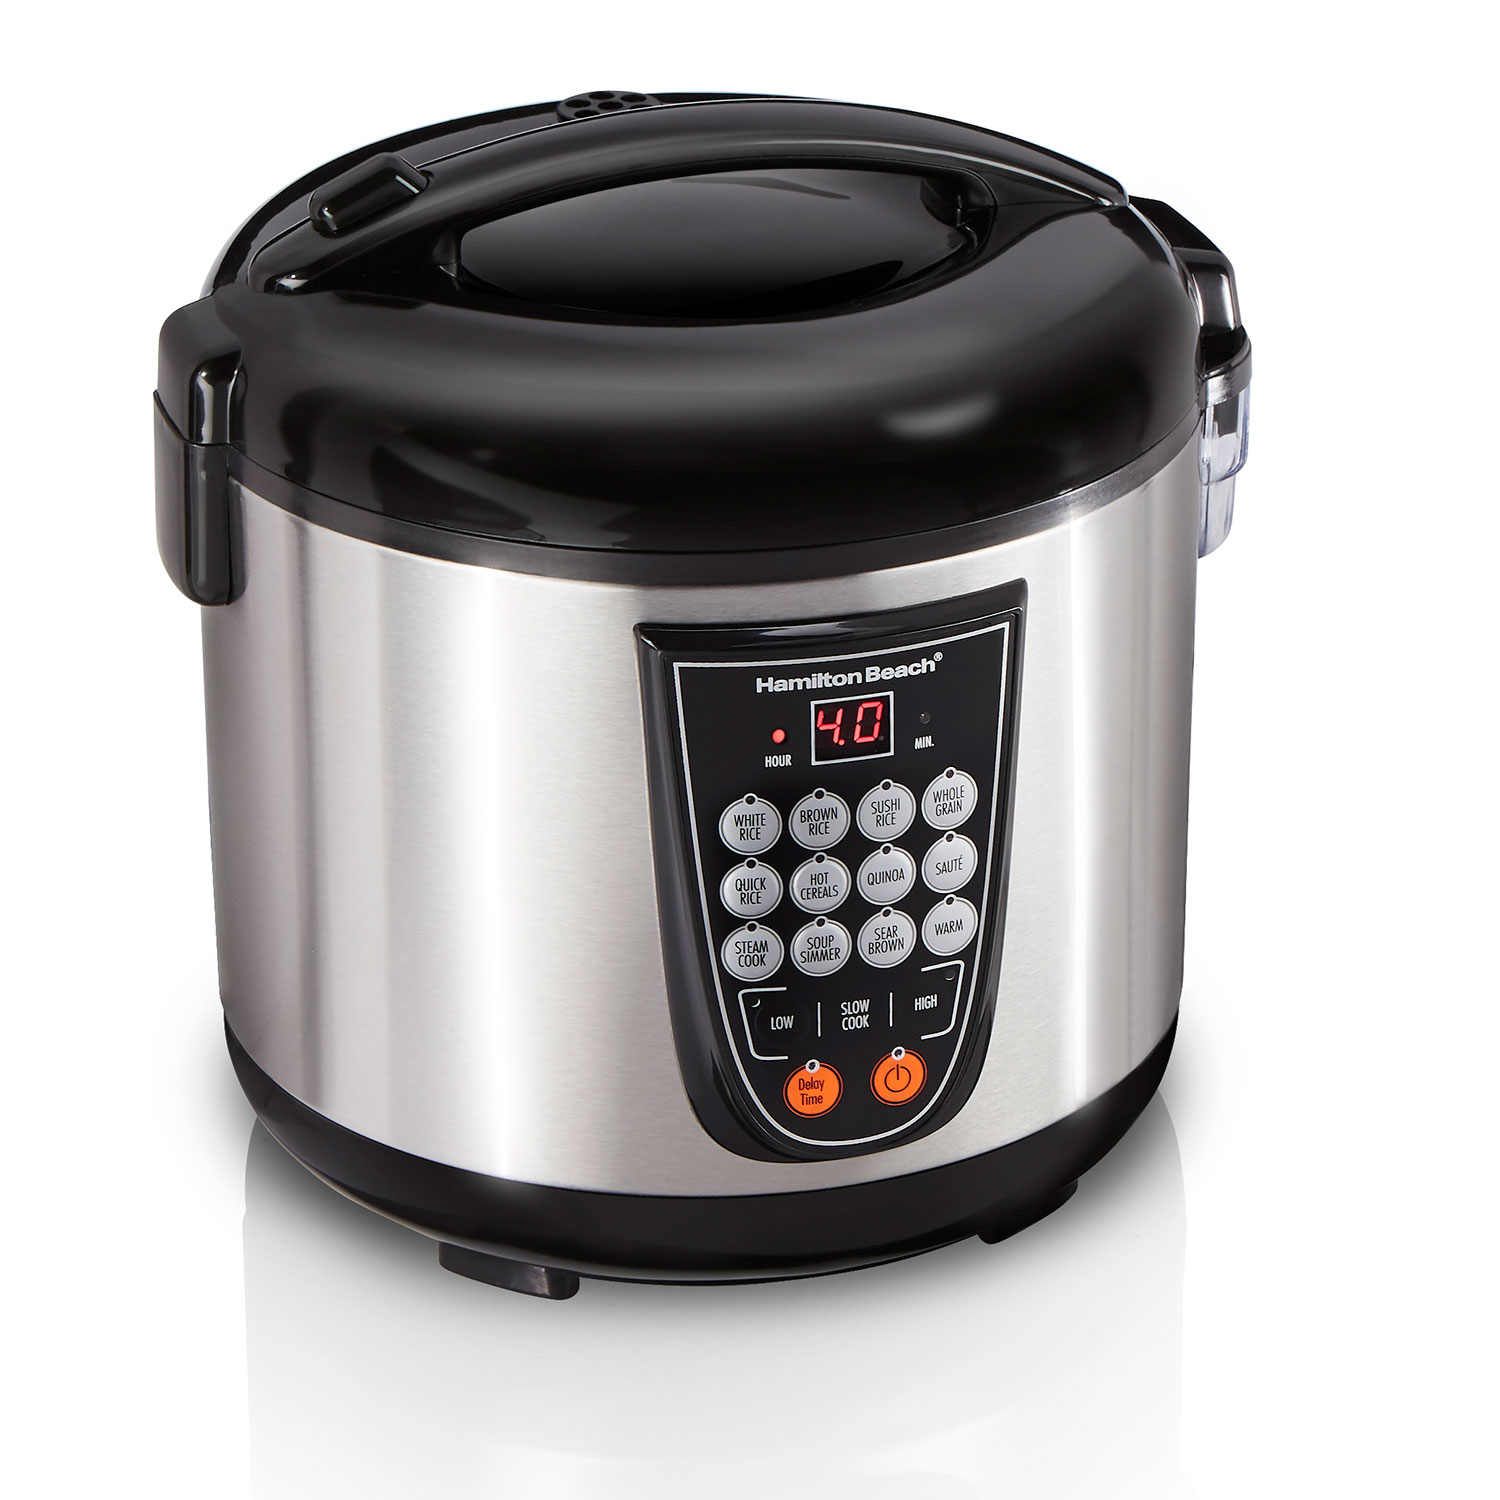 4.5 Quart Digital Multi Cooker (37571)